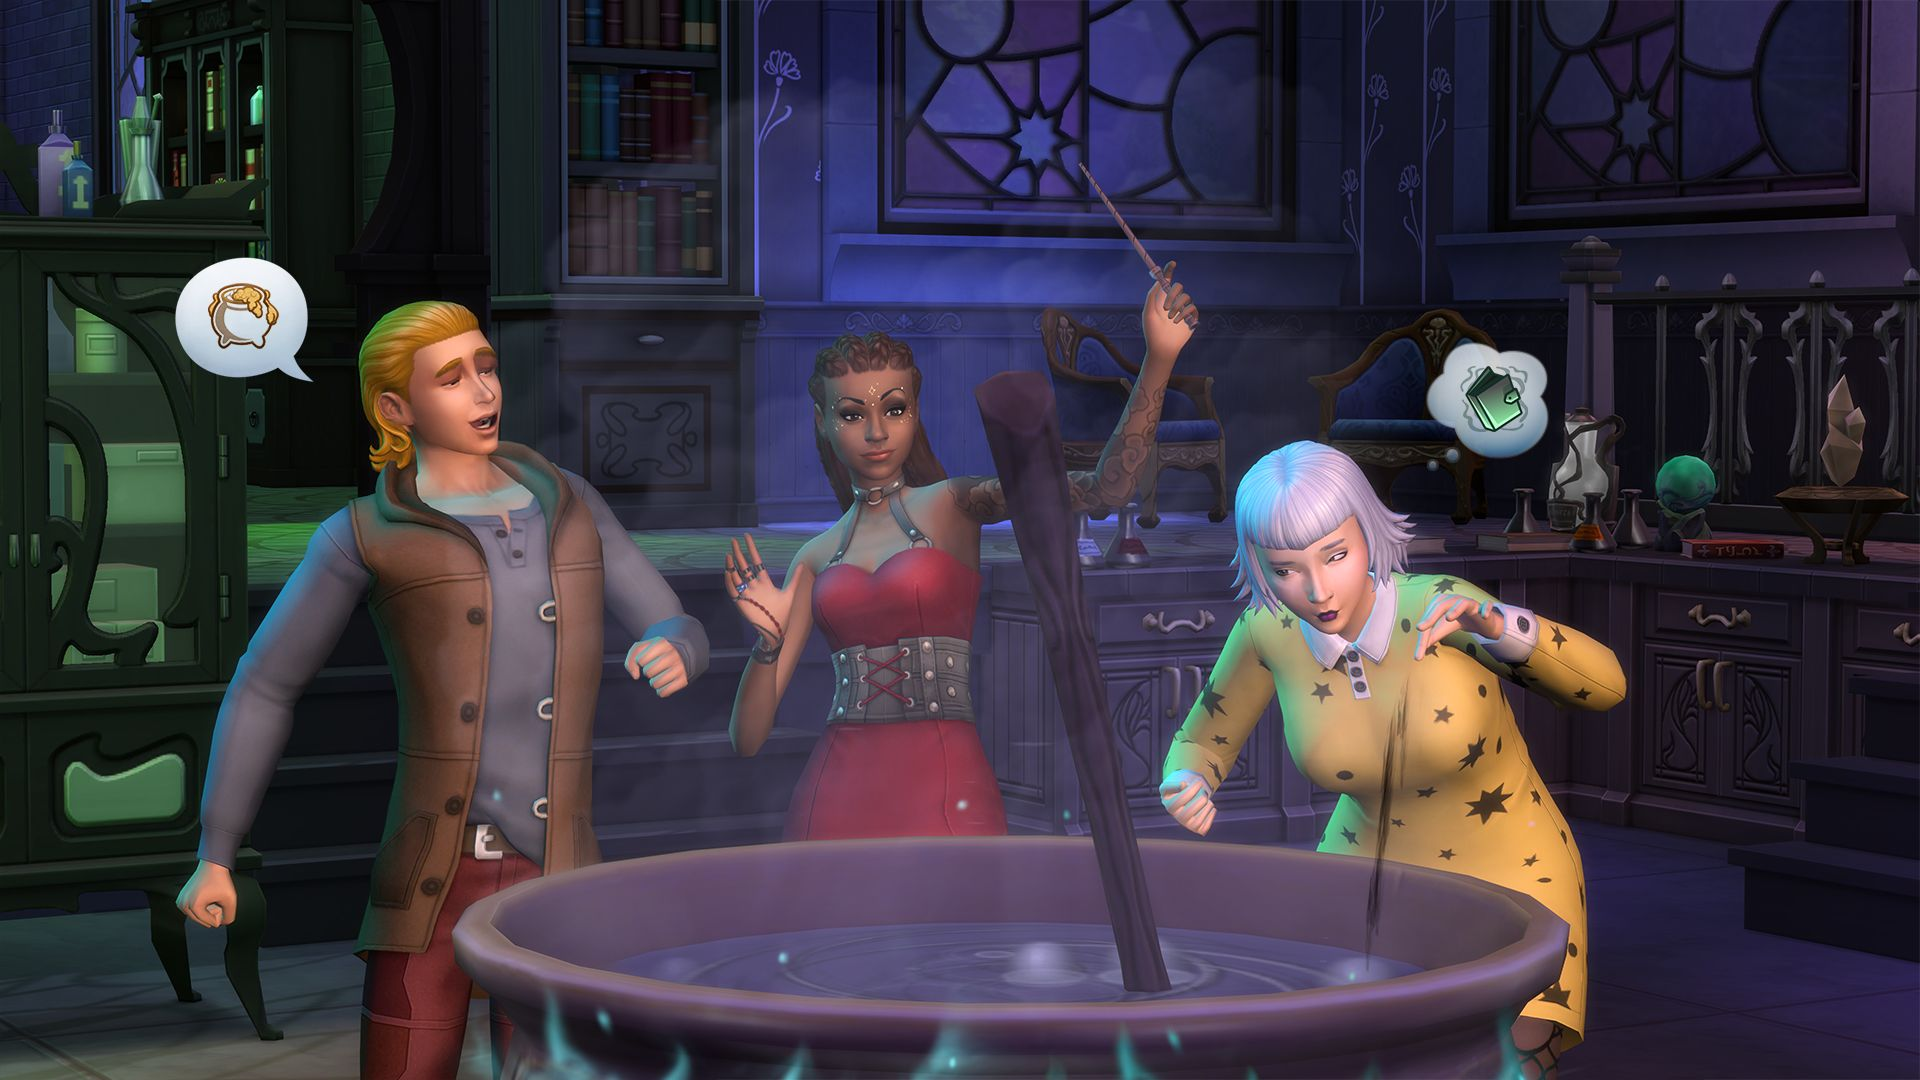 The Sims 4: Realm of Magic lets you brew smelly potions and skip the tedium of life